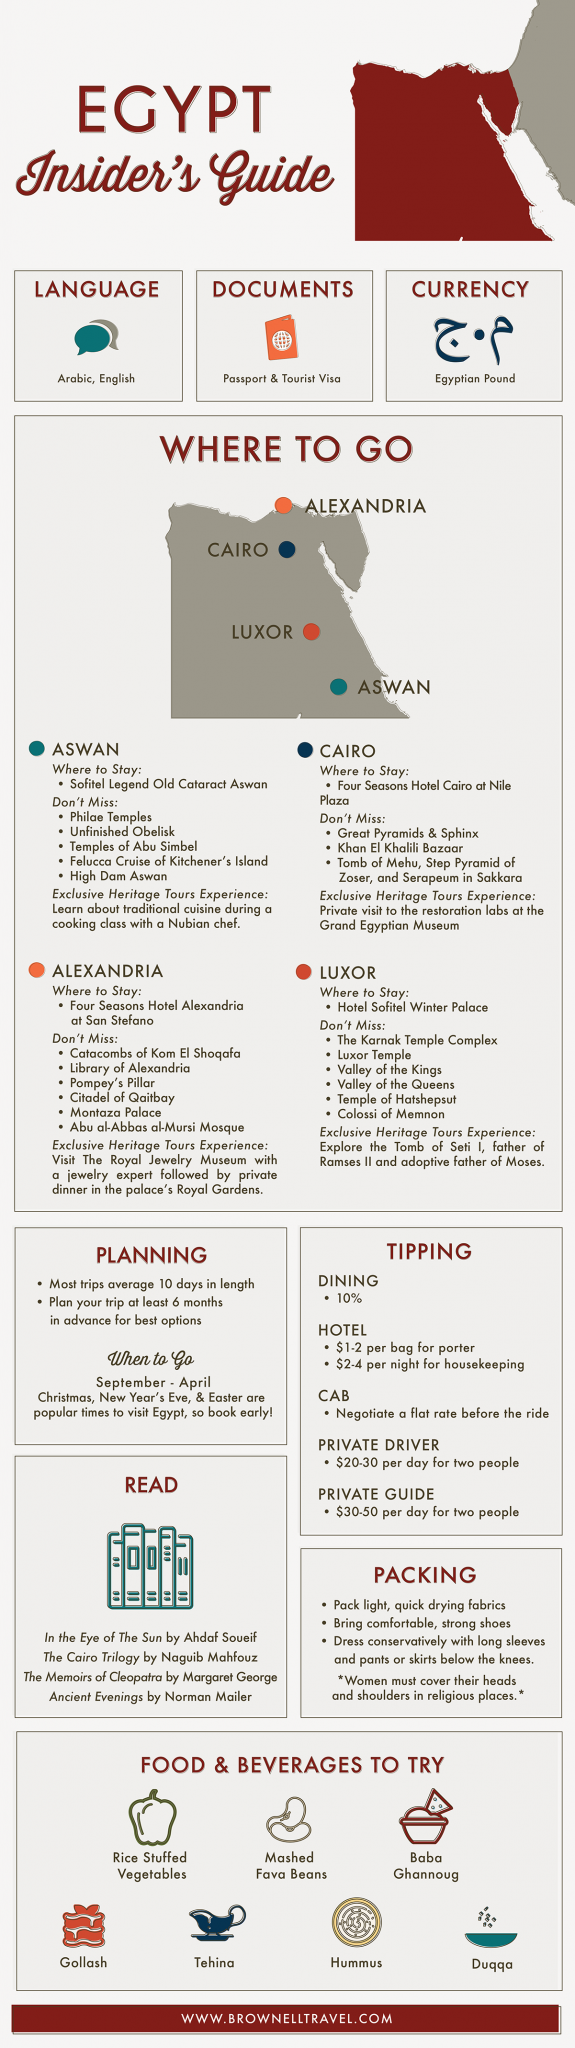 insiders-guide-to-egypt-infographic